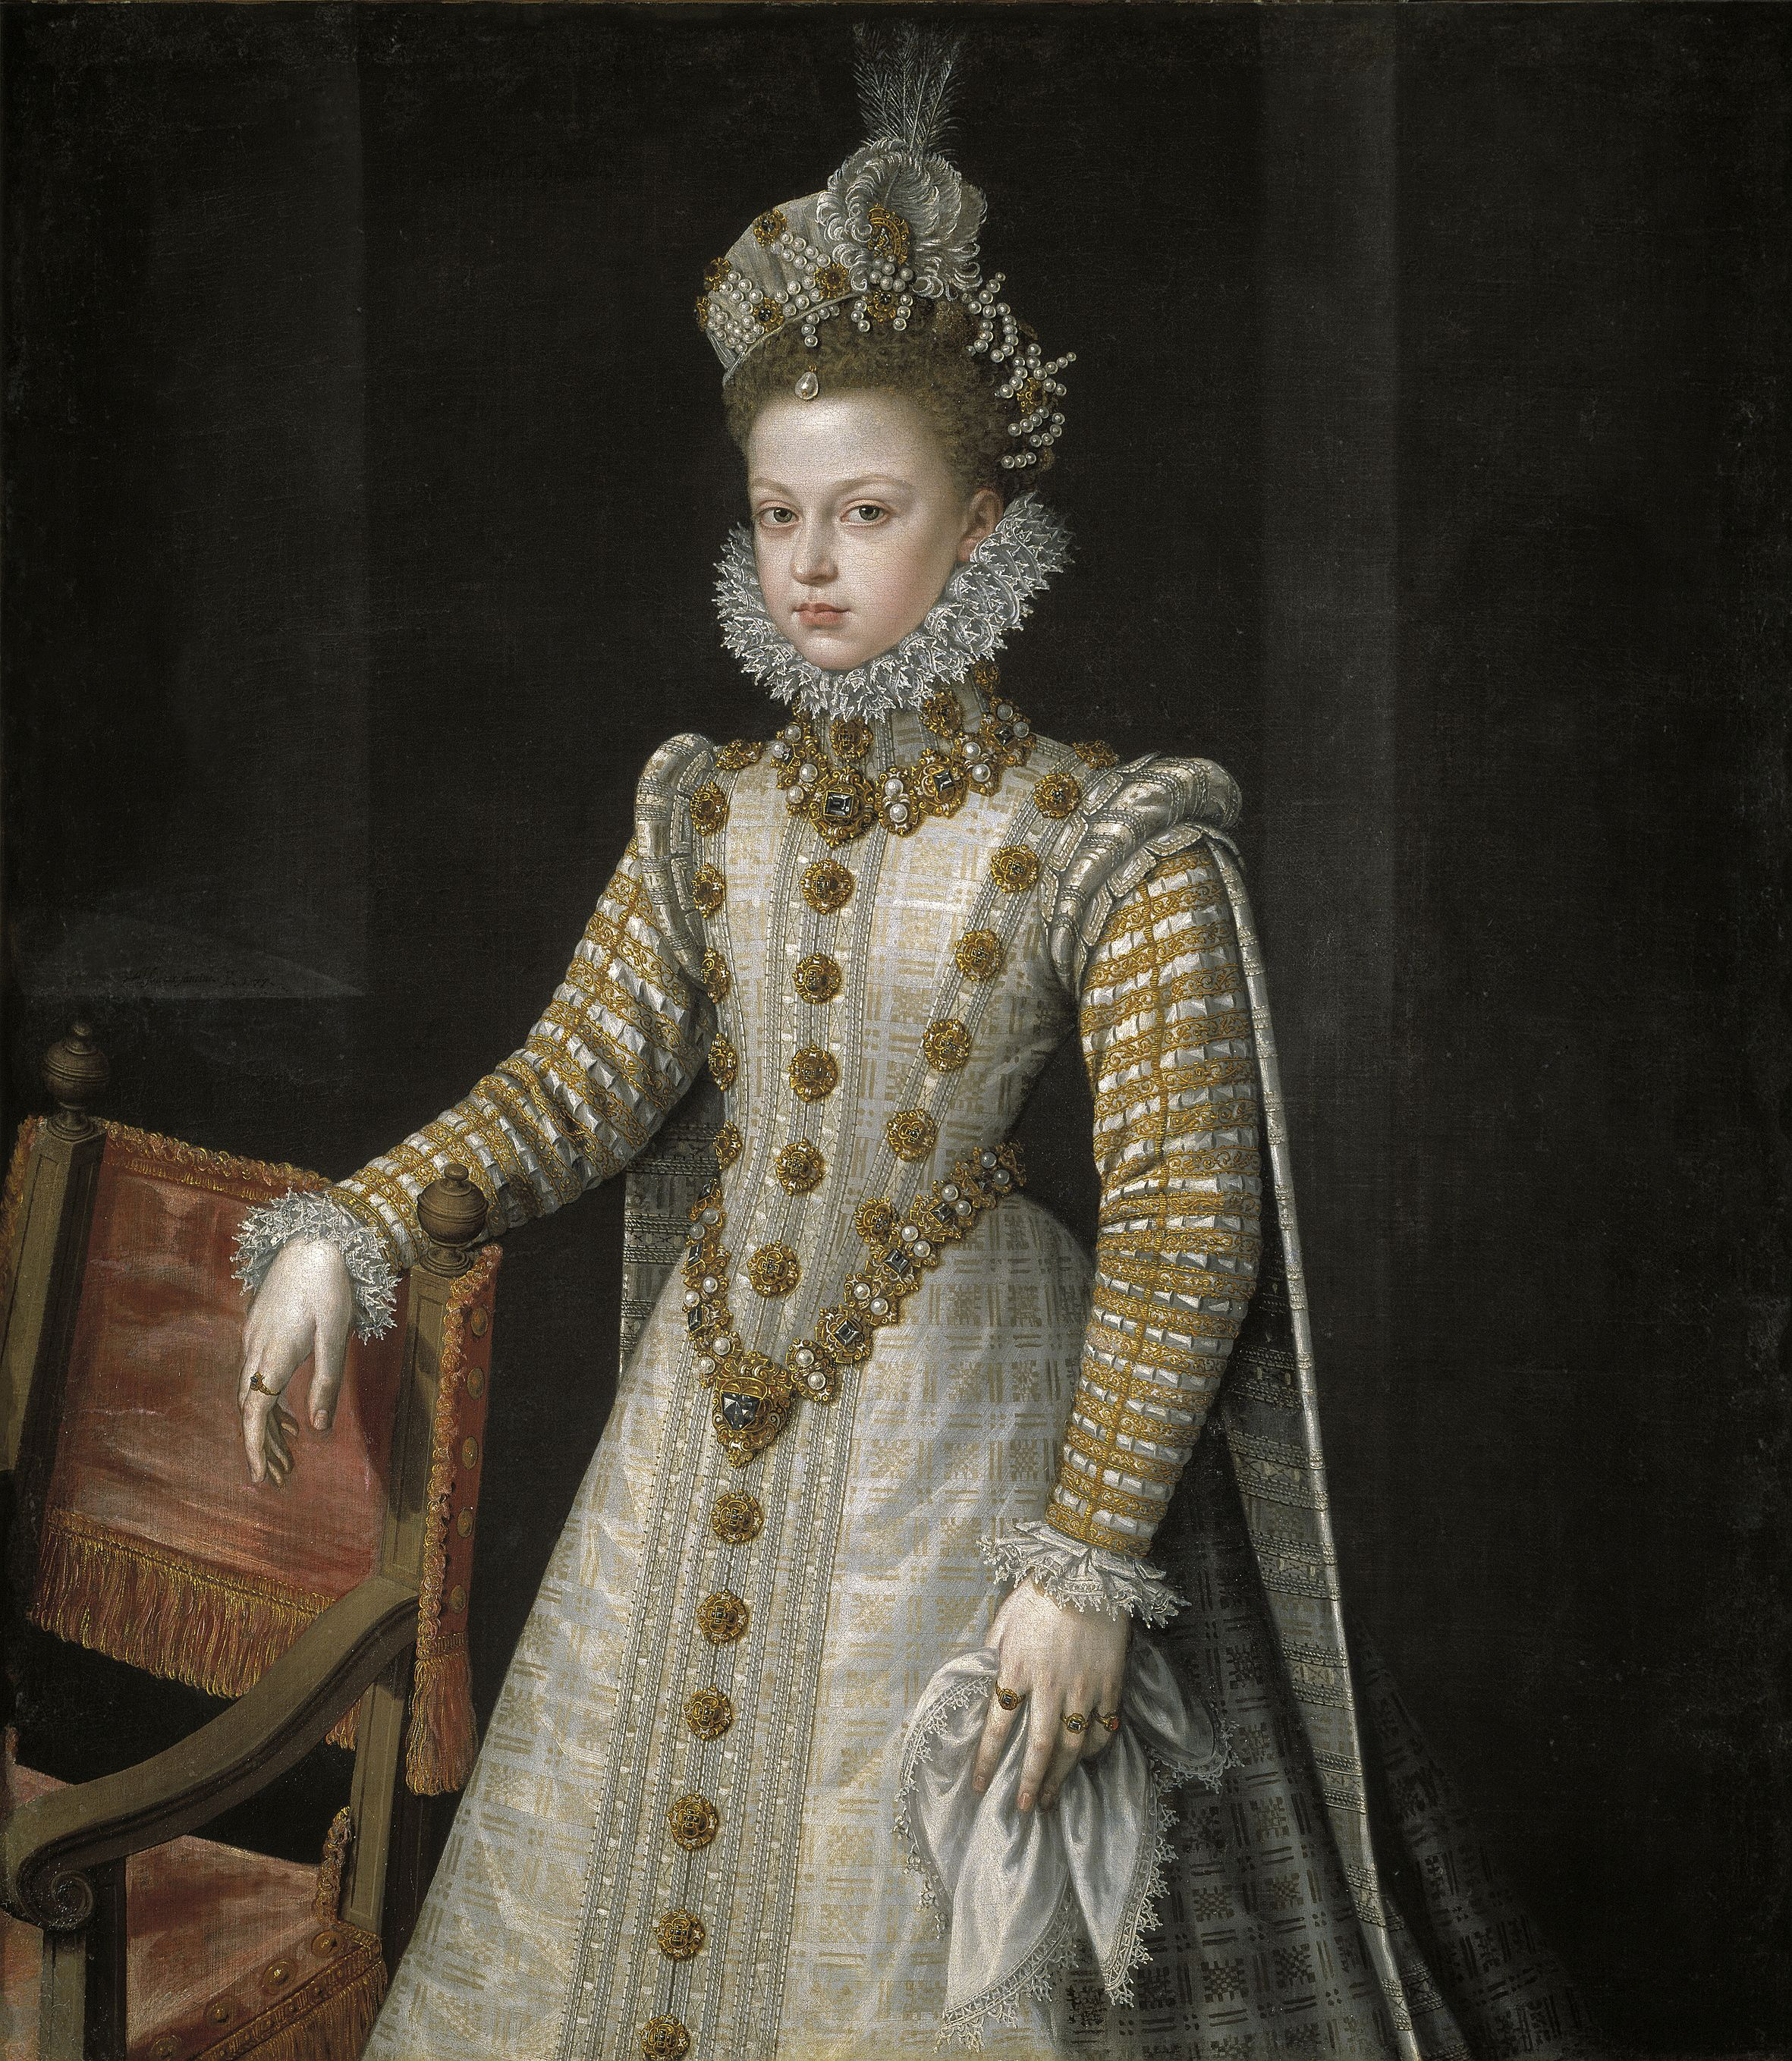 Portrait of the Infanta Isabella Clara Eugenia by Alonso Sánchez Coello